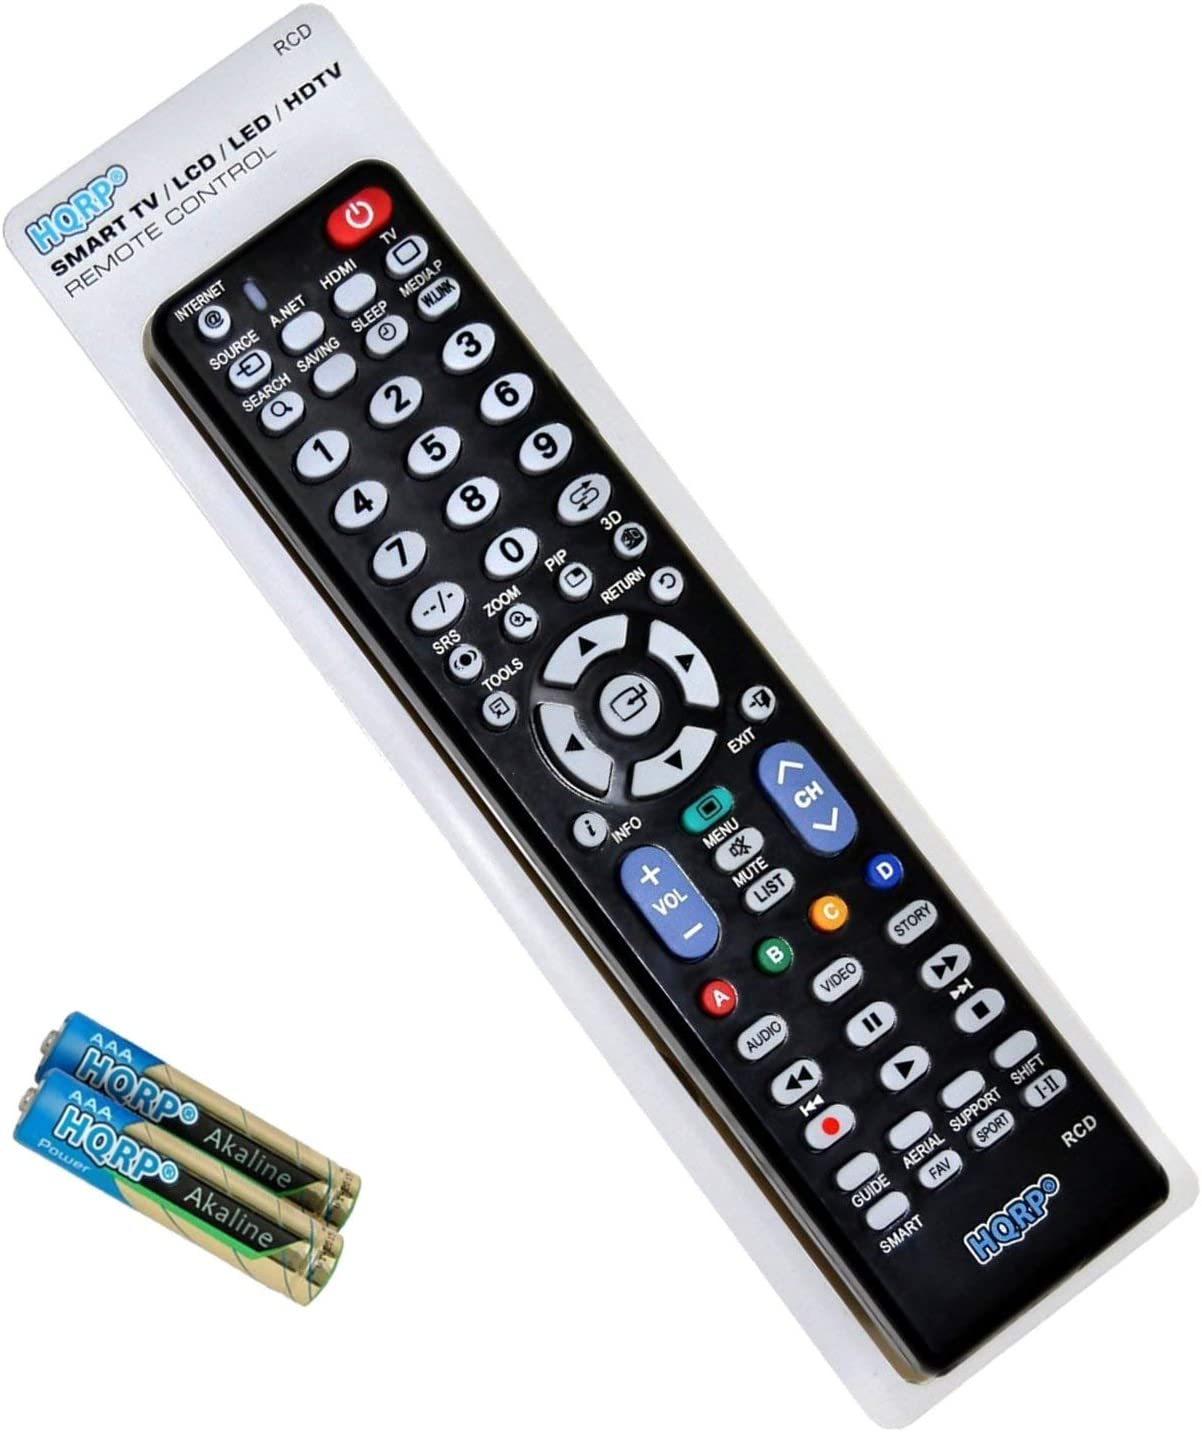 HQRP Remote Control Works with Samsung HP-R5072 HP-R6372 HP-R8082 HP-S4233 HP-S4253 HP-S4273 LCD LED HD Smart TV